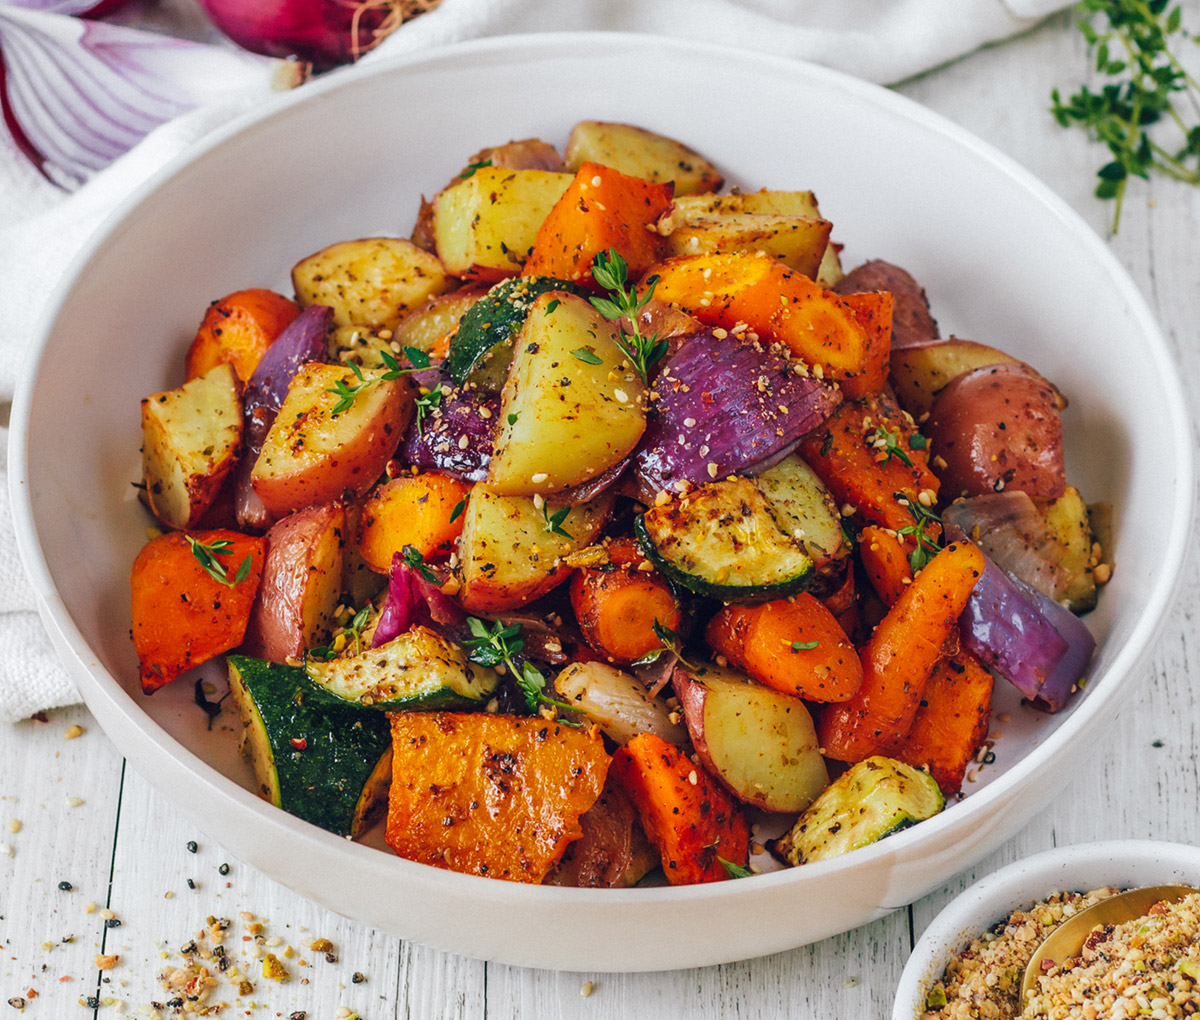 ROAST VEGGIES WITH RED ONION AND DUKKAH